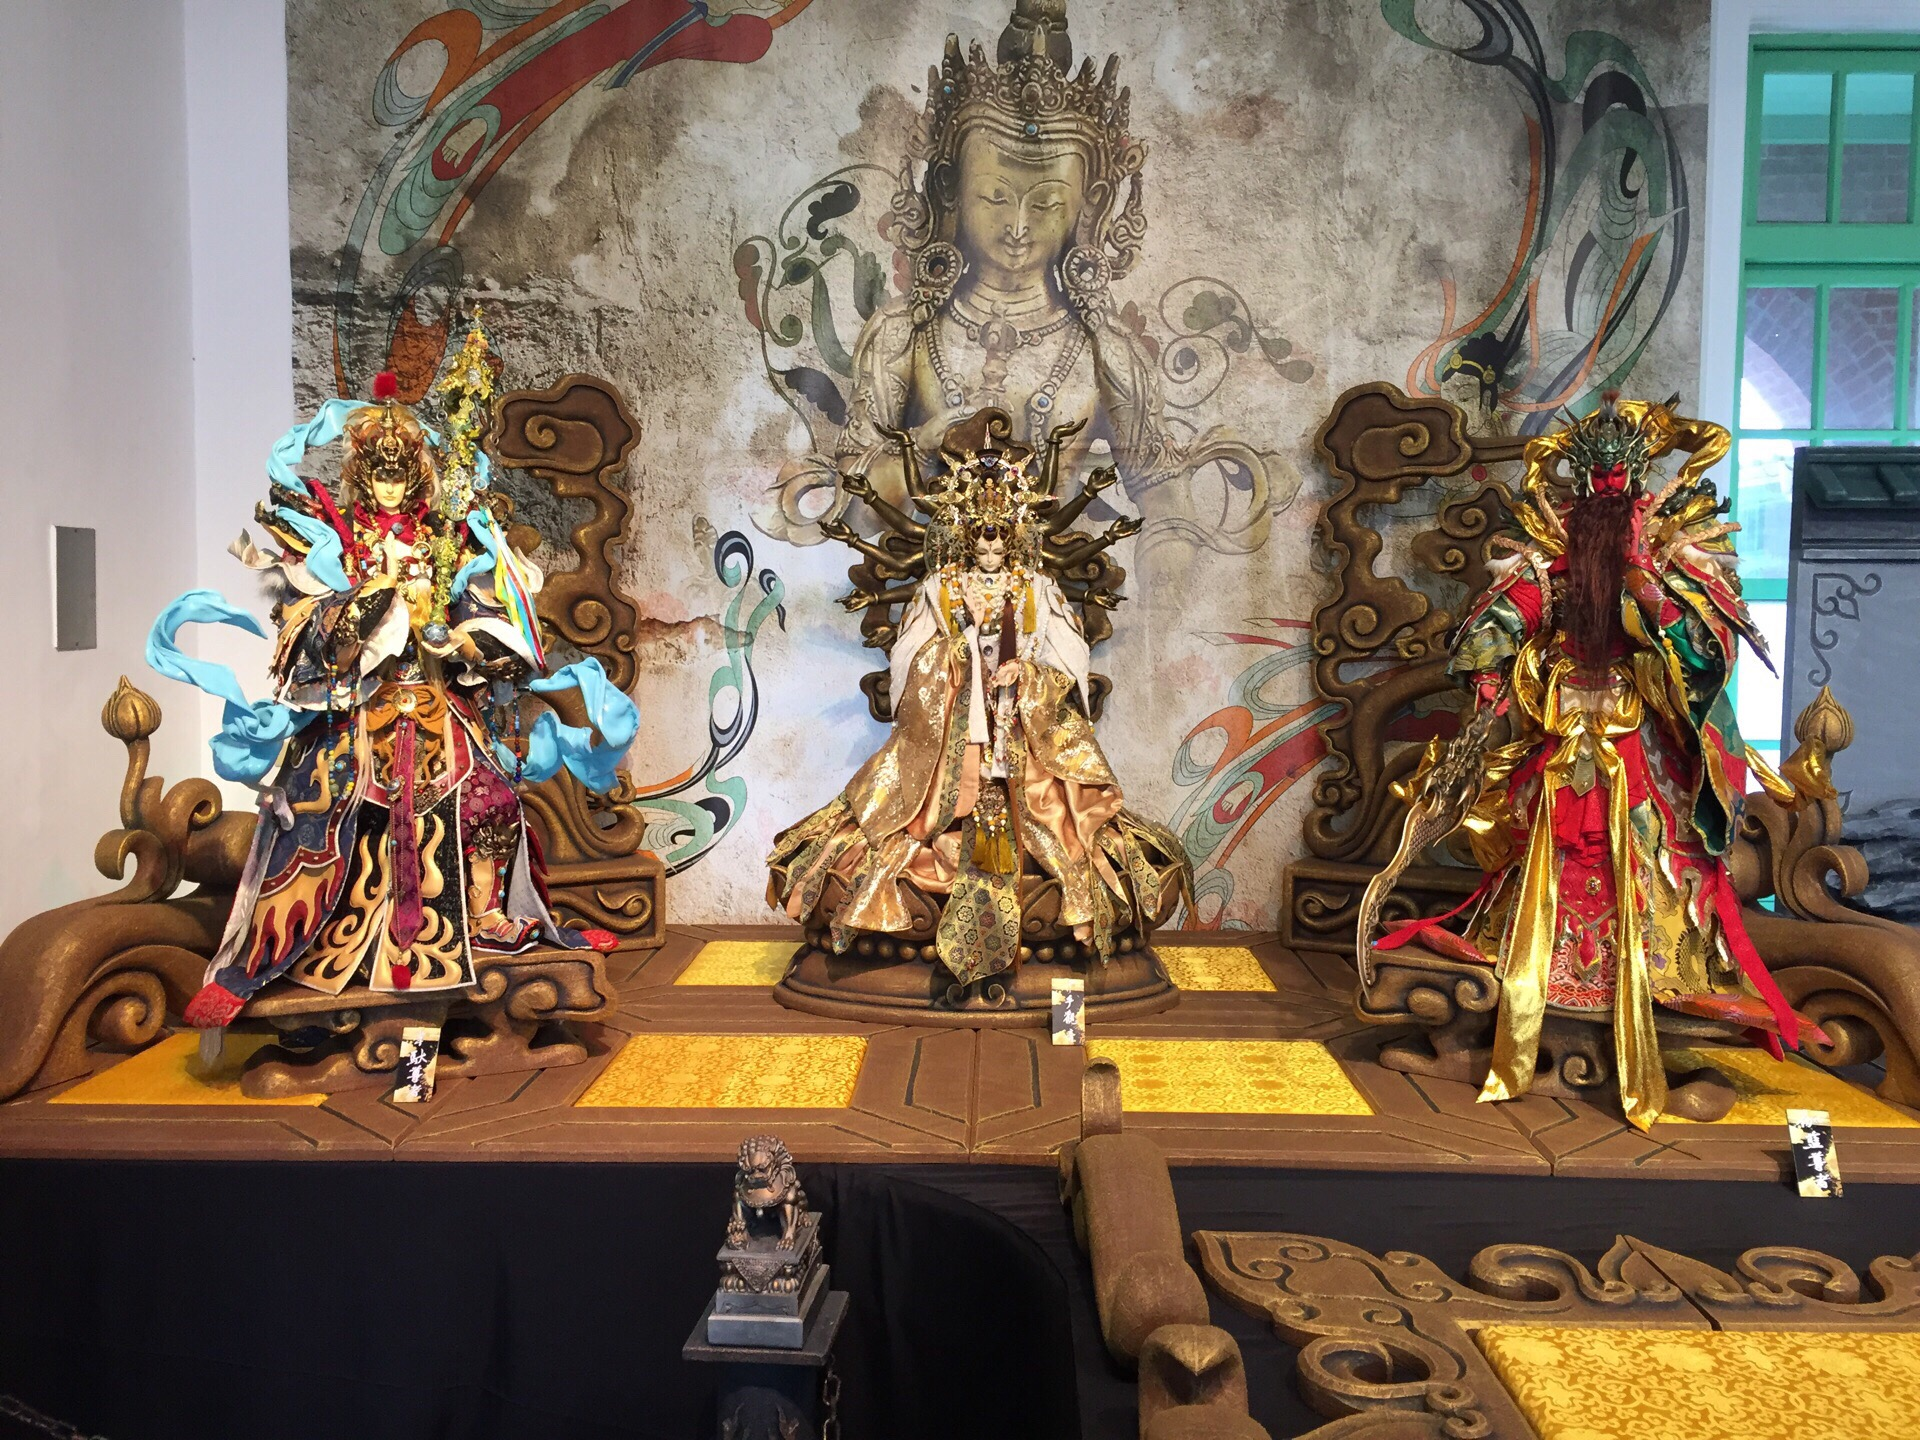 Yunlin Puppet Theatre Museum